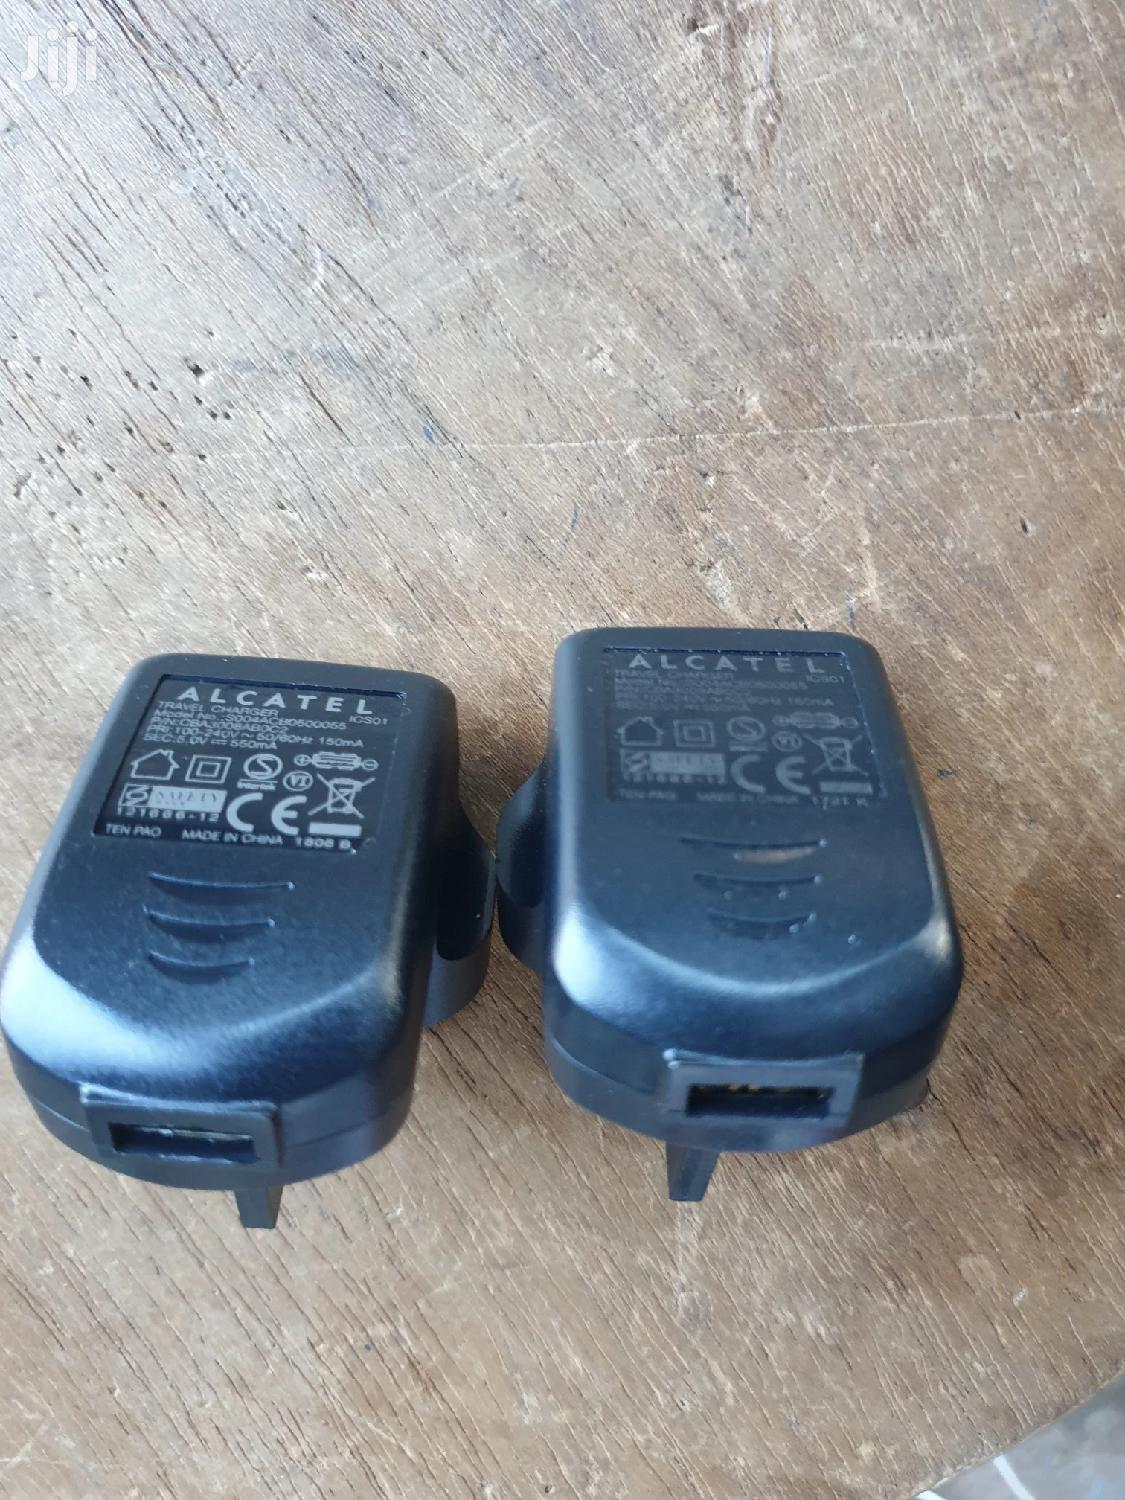 Original Charger UK Type | Accessories for Mobile Phones & Tablets for sale in Achimota, Greater Accra, Ghana